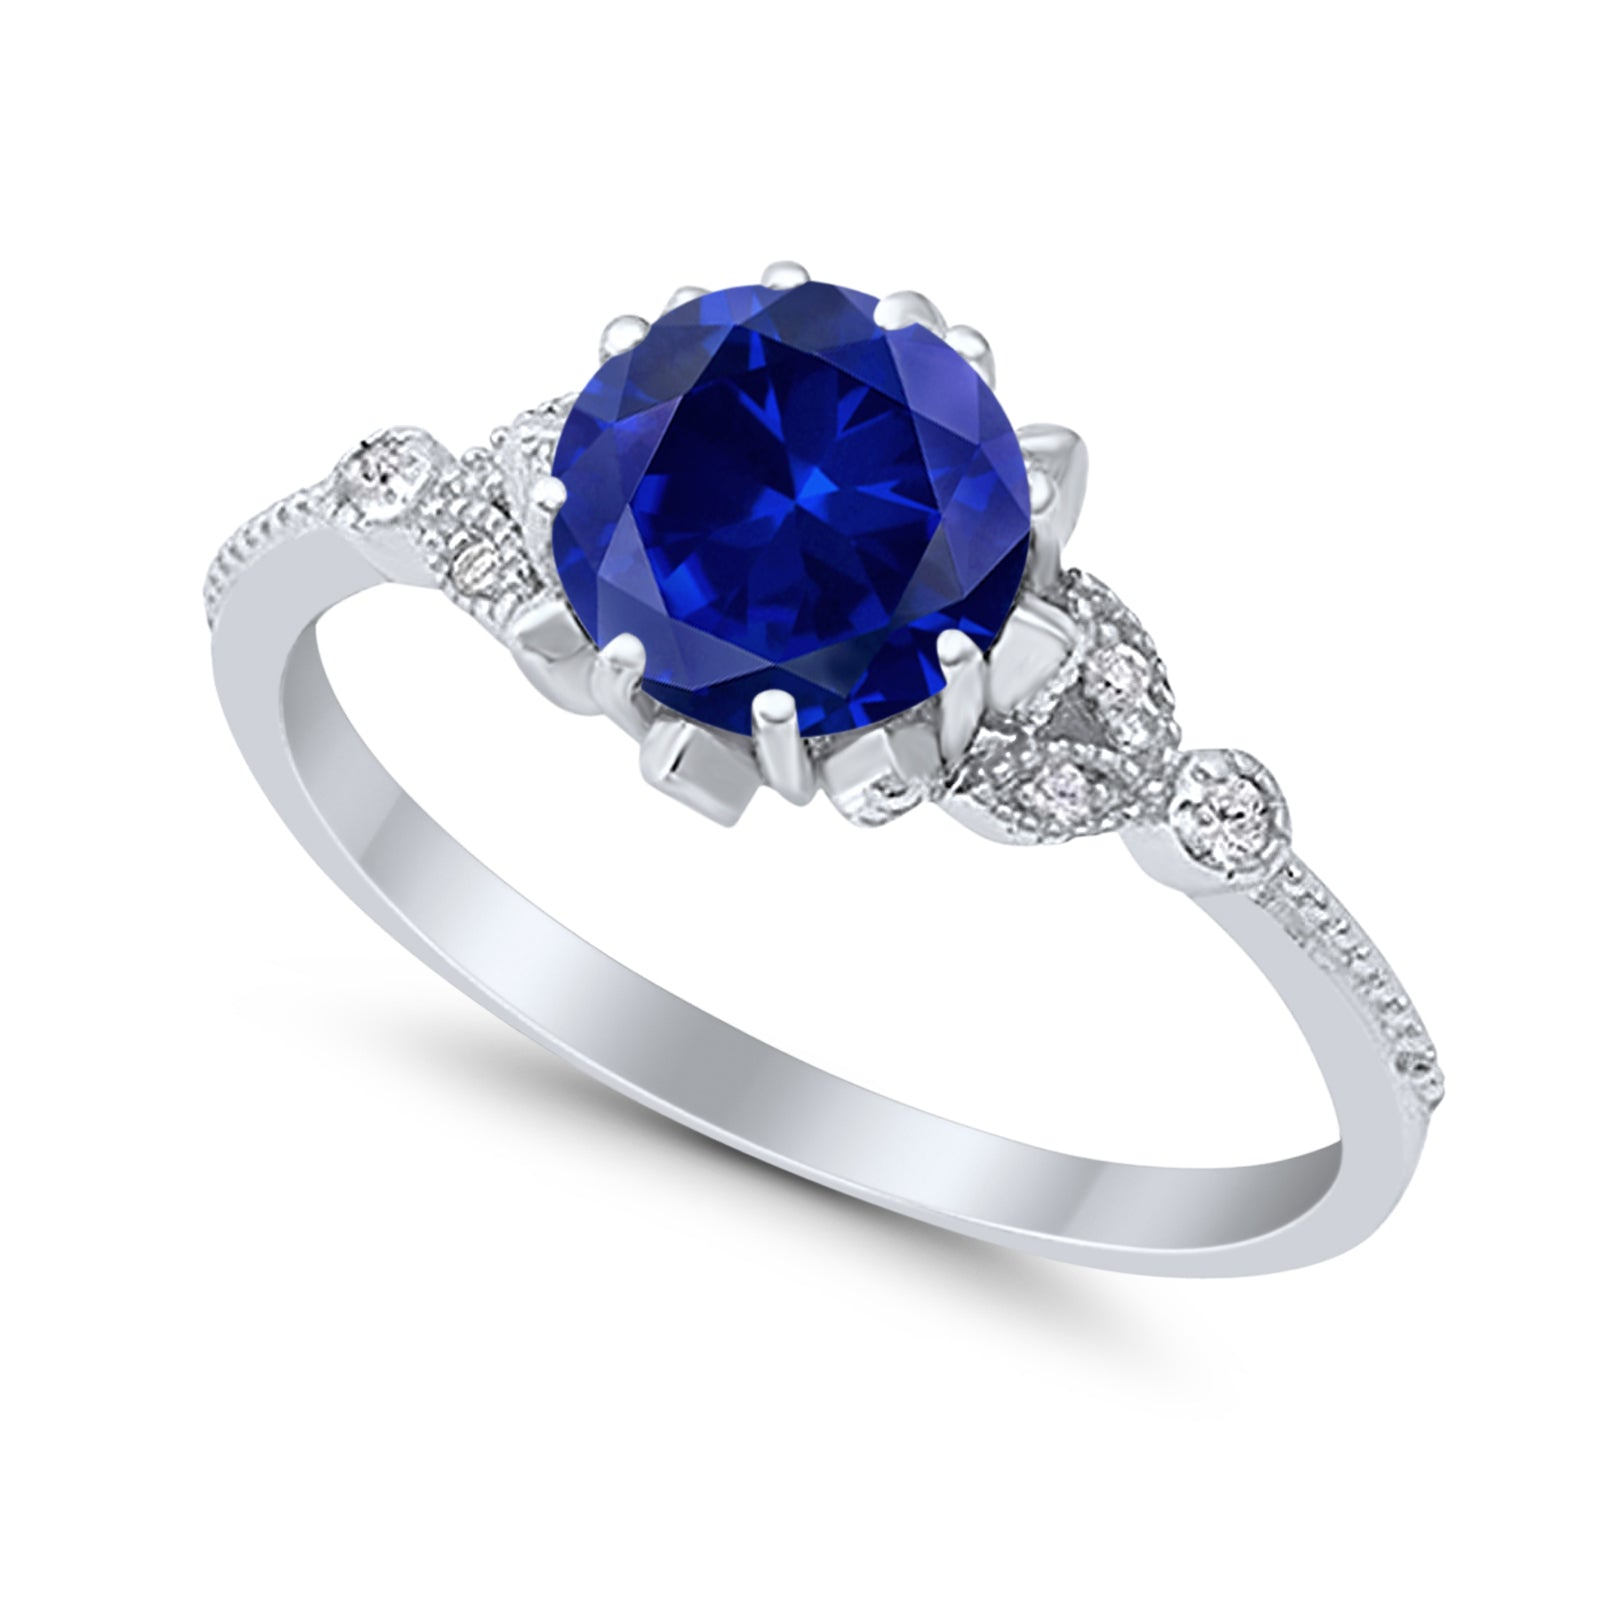 Art Deco Design Fashion Ring Round Simulated Blue Sapphire CZ 925 Sterling Silver